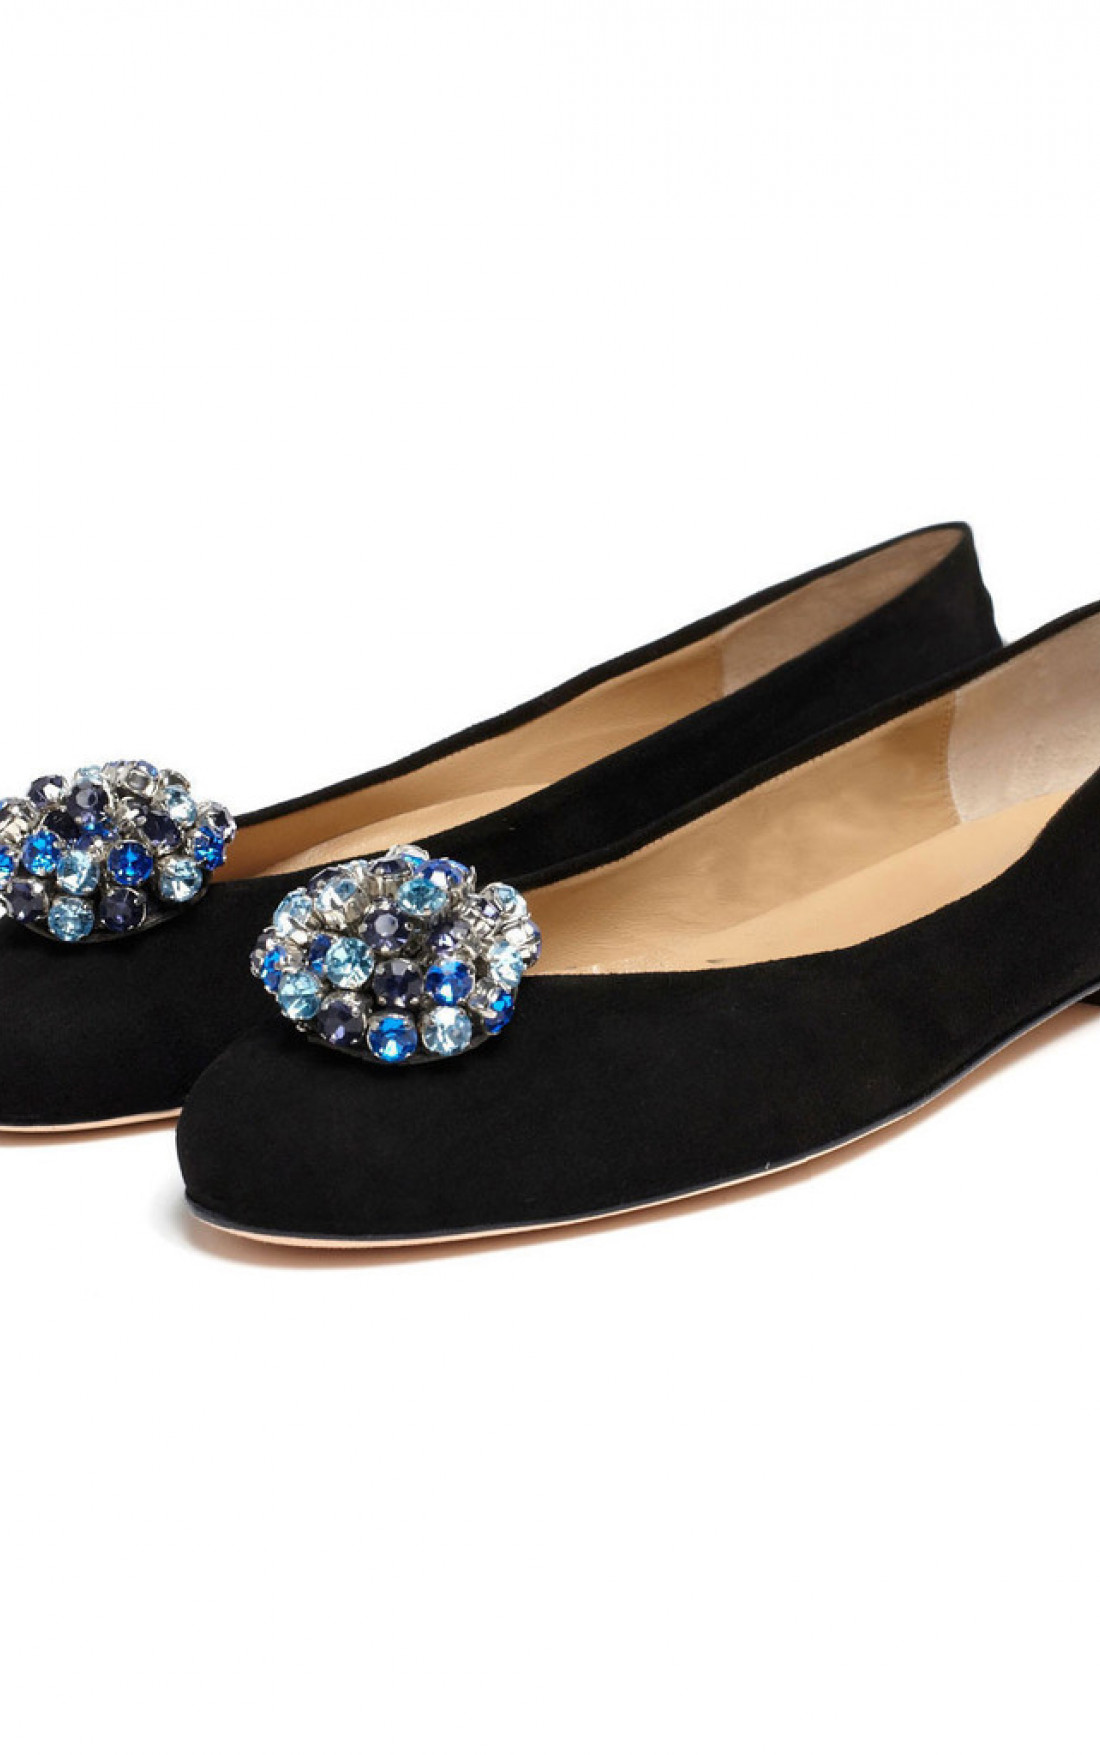 Cleo B - Blue Crystal Shoe Clips (CBCRY)